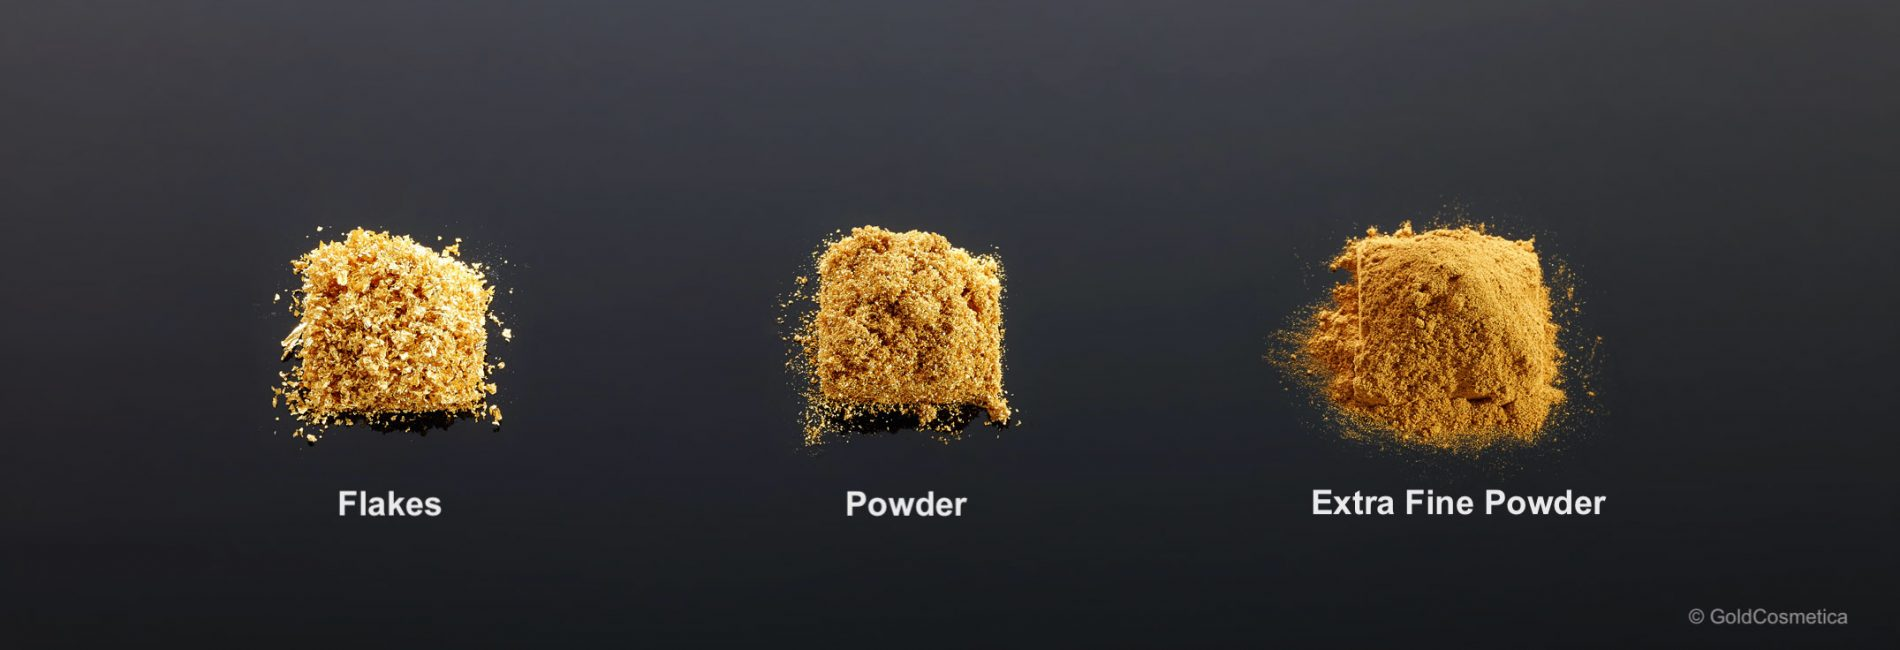 Gold flakes, powder and extra fine powder